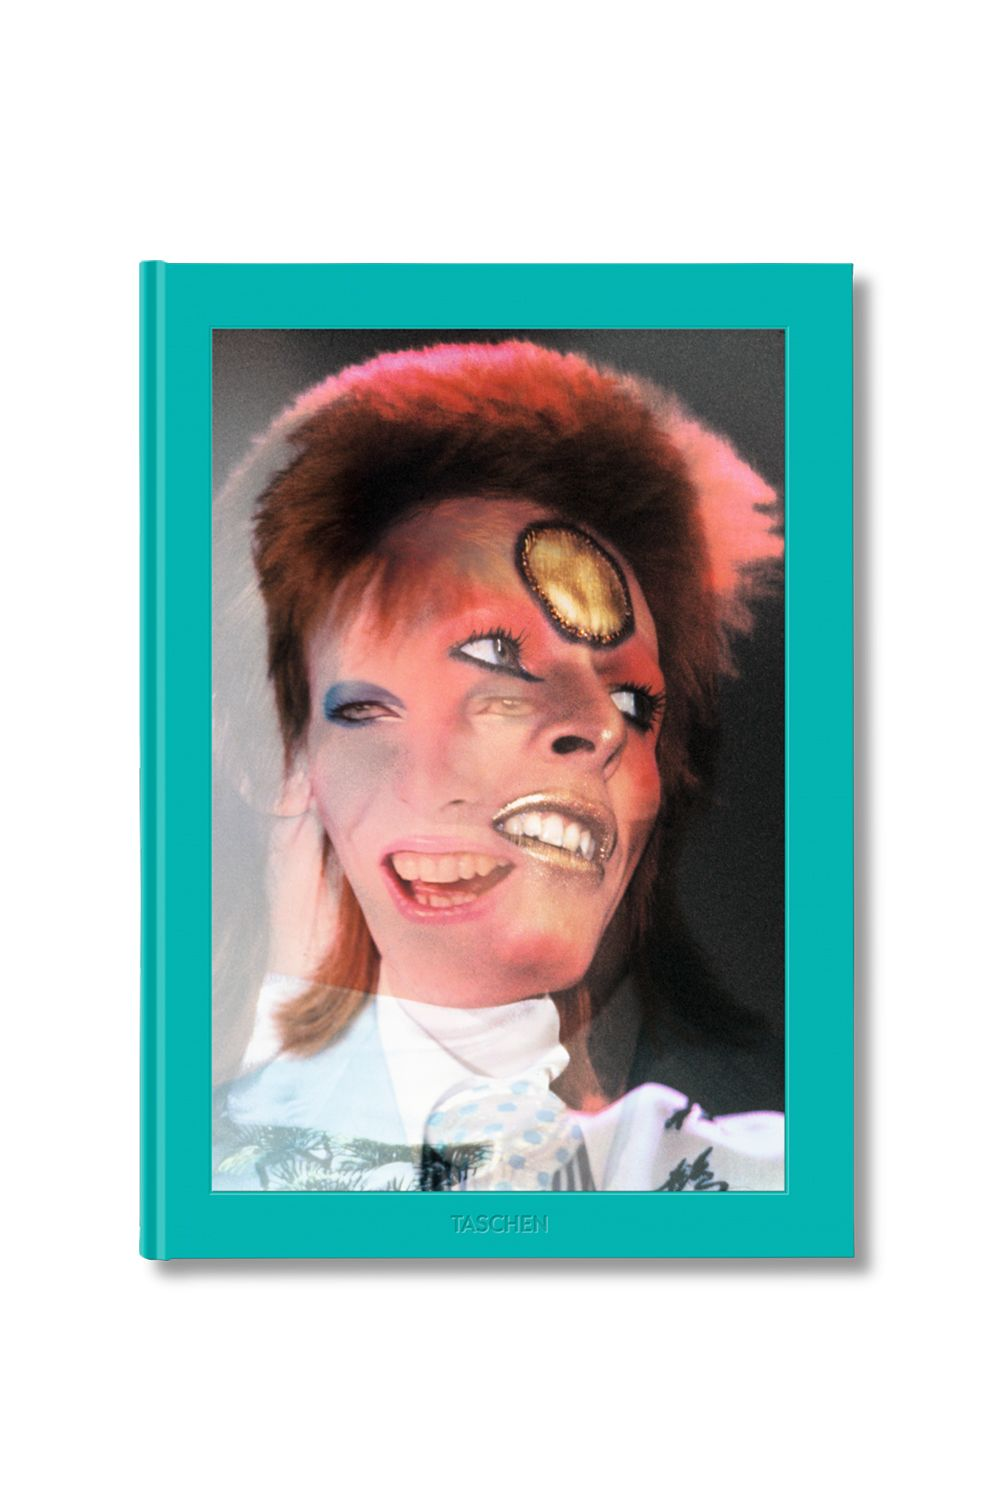 "<p><span class=""redactor-invisible-space"" data-verified=""redactor"" data-redactor-tag=""span"" data-redactor-class=""redactor-invisible-space"">The Thin White Duke was gone far too soon, and one of the best ways to pay tribute is this giant David Bowie book—<span class=""redactor-invisible-space"" data-verified=""redactor"" data-redactor-tag=""span"" data-redactor-class=""redactor-invisible-space""></span>released this year from Taschen—<span class=""redactor-invisible-space"" data-verified=""redactor"" data-redactor-tag=""span"" data-redactor-class=""redactor-invisible-space""></span>that features large-scale photographs of him by photographer Mick Rock at his most colorful moments on-stage and in his dressing room during the Ziggy Stardust era. </span></p><p><strong data-redactor-tag=""strong"" data-verified=""redactor""><em data-redactor-tag=""em"" data-verified=""redactor"">Mick Rock: The Rise of David Bowie, 1972-1973</em>, $48; <a href=""http://www.barnesandnoble.com/w/mick-rock-mick-rock/1123289737?ean=9783836560948&st=PLA&sid=BNB_DRS_Core+Shopping+Books_00000000&2sid=Google_&sourceId=PLGoP737&k_clickid=3x737"" target=""_blank"">barnesandnoble.com</a>.</strong></p>"